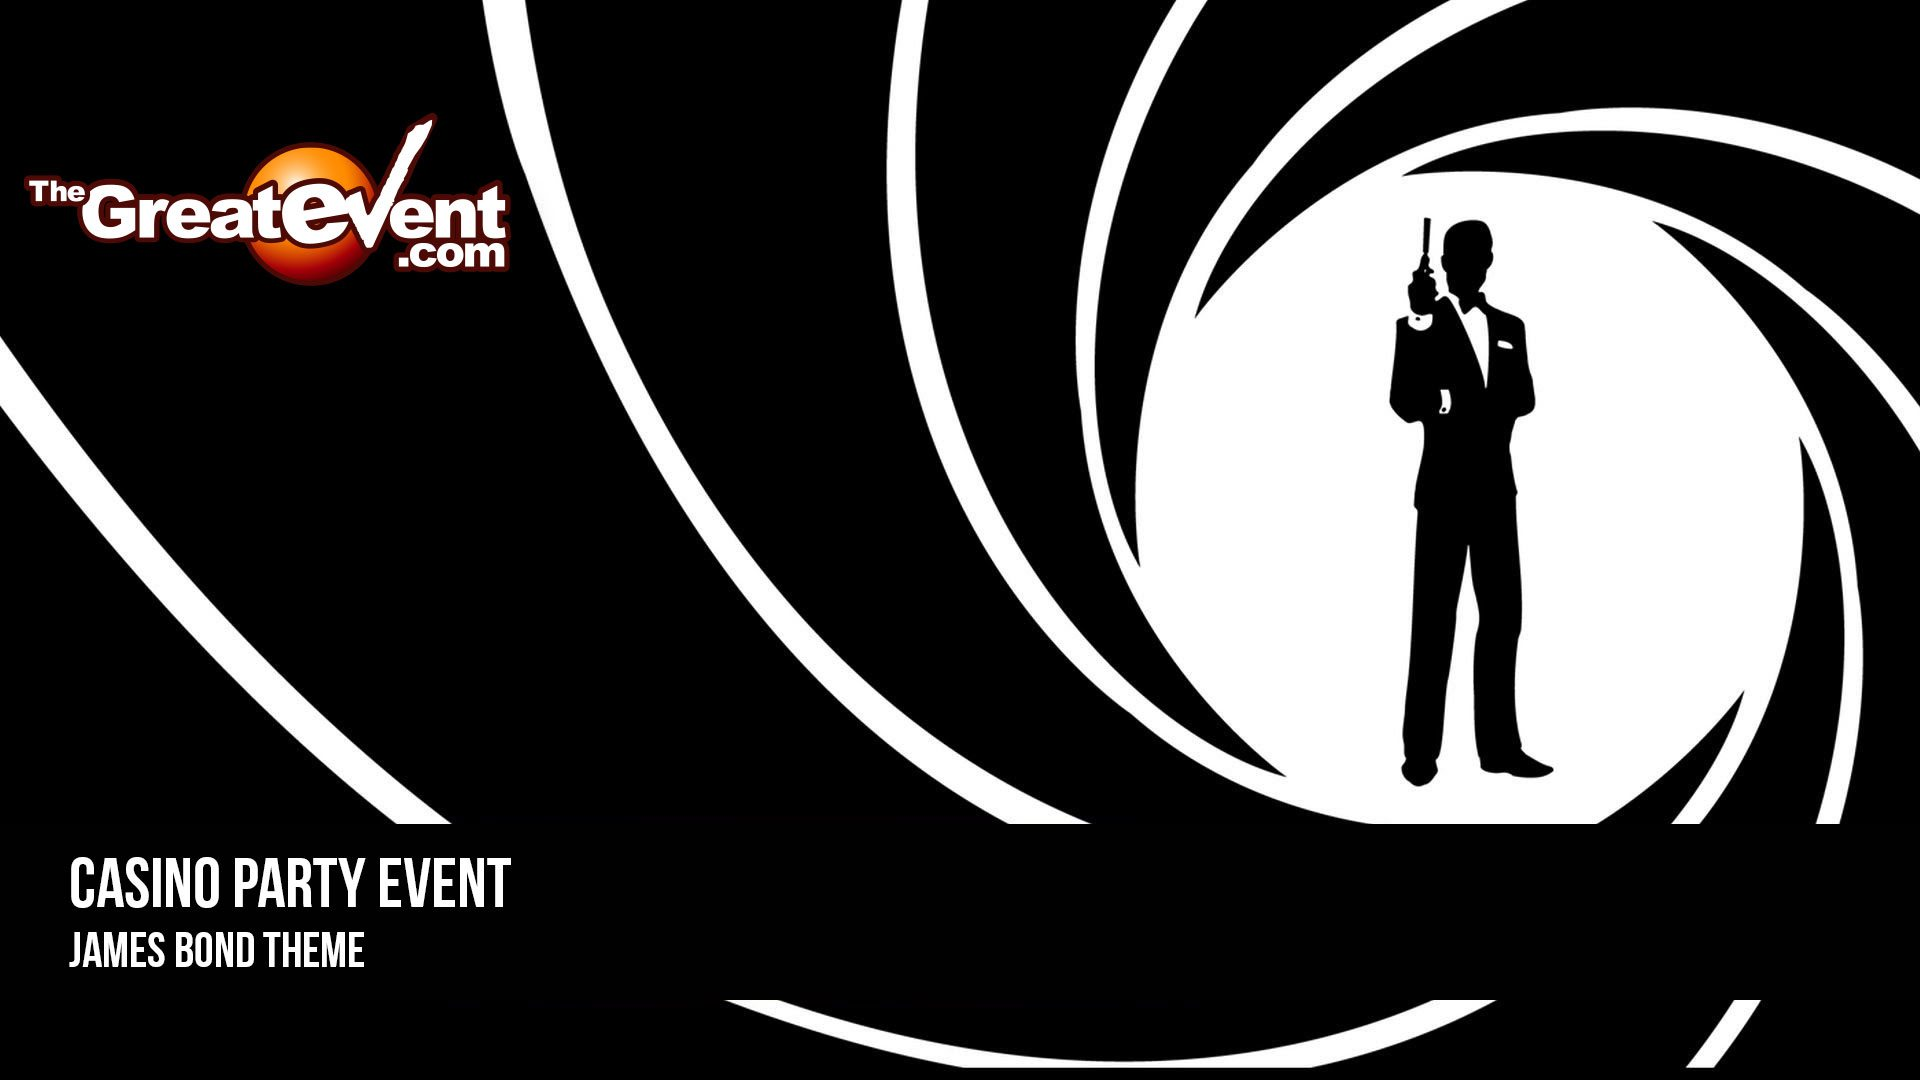 James Bond Einladung Casino Party James Bond Theme The Great Event